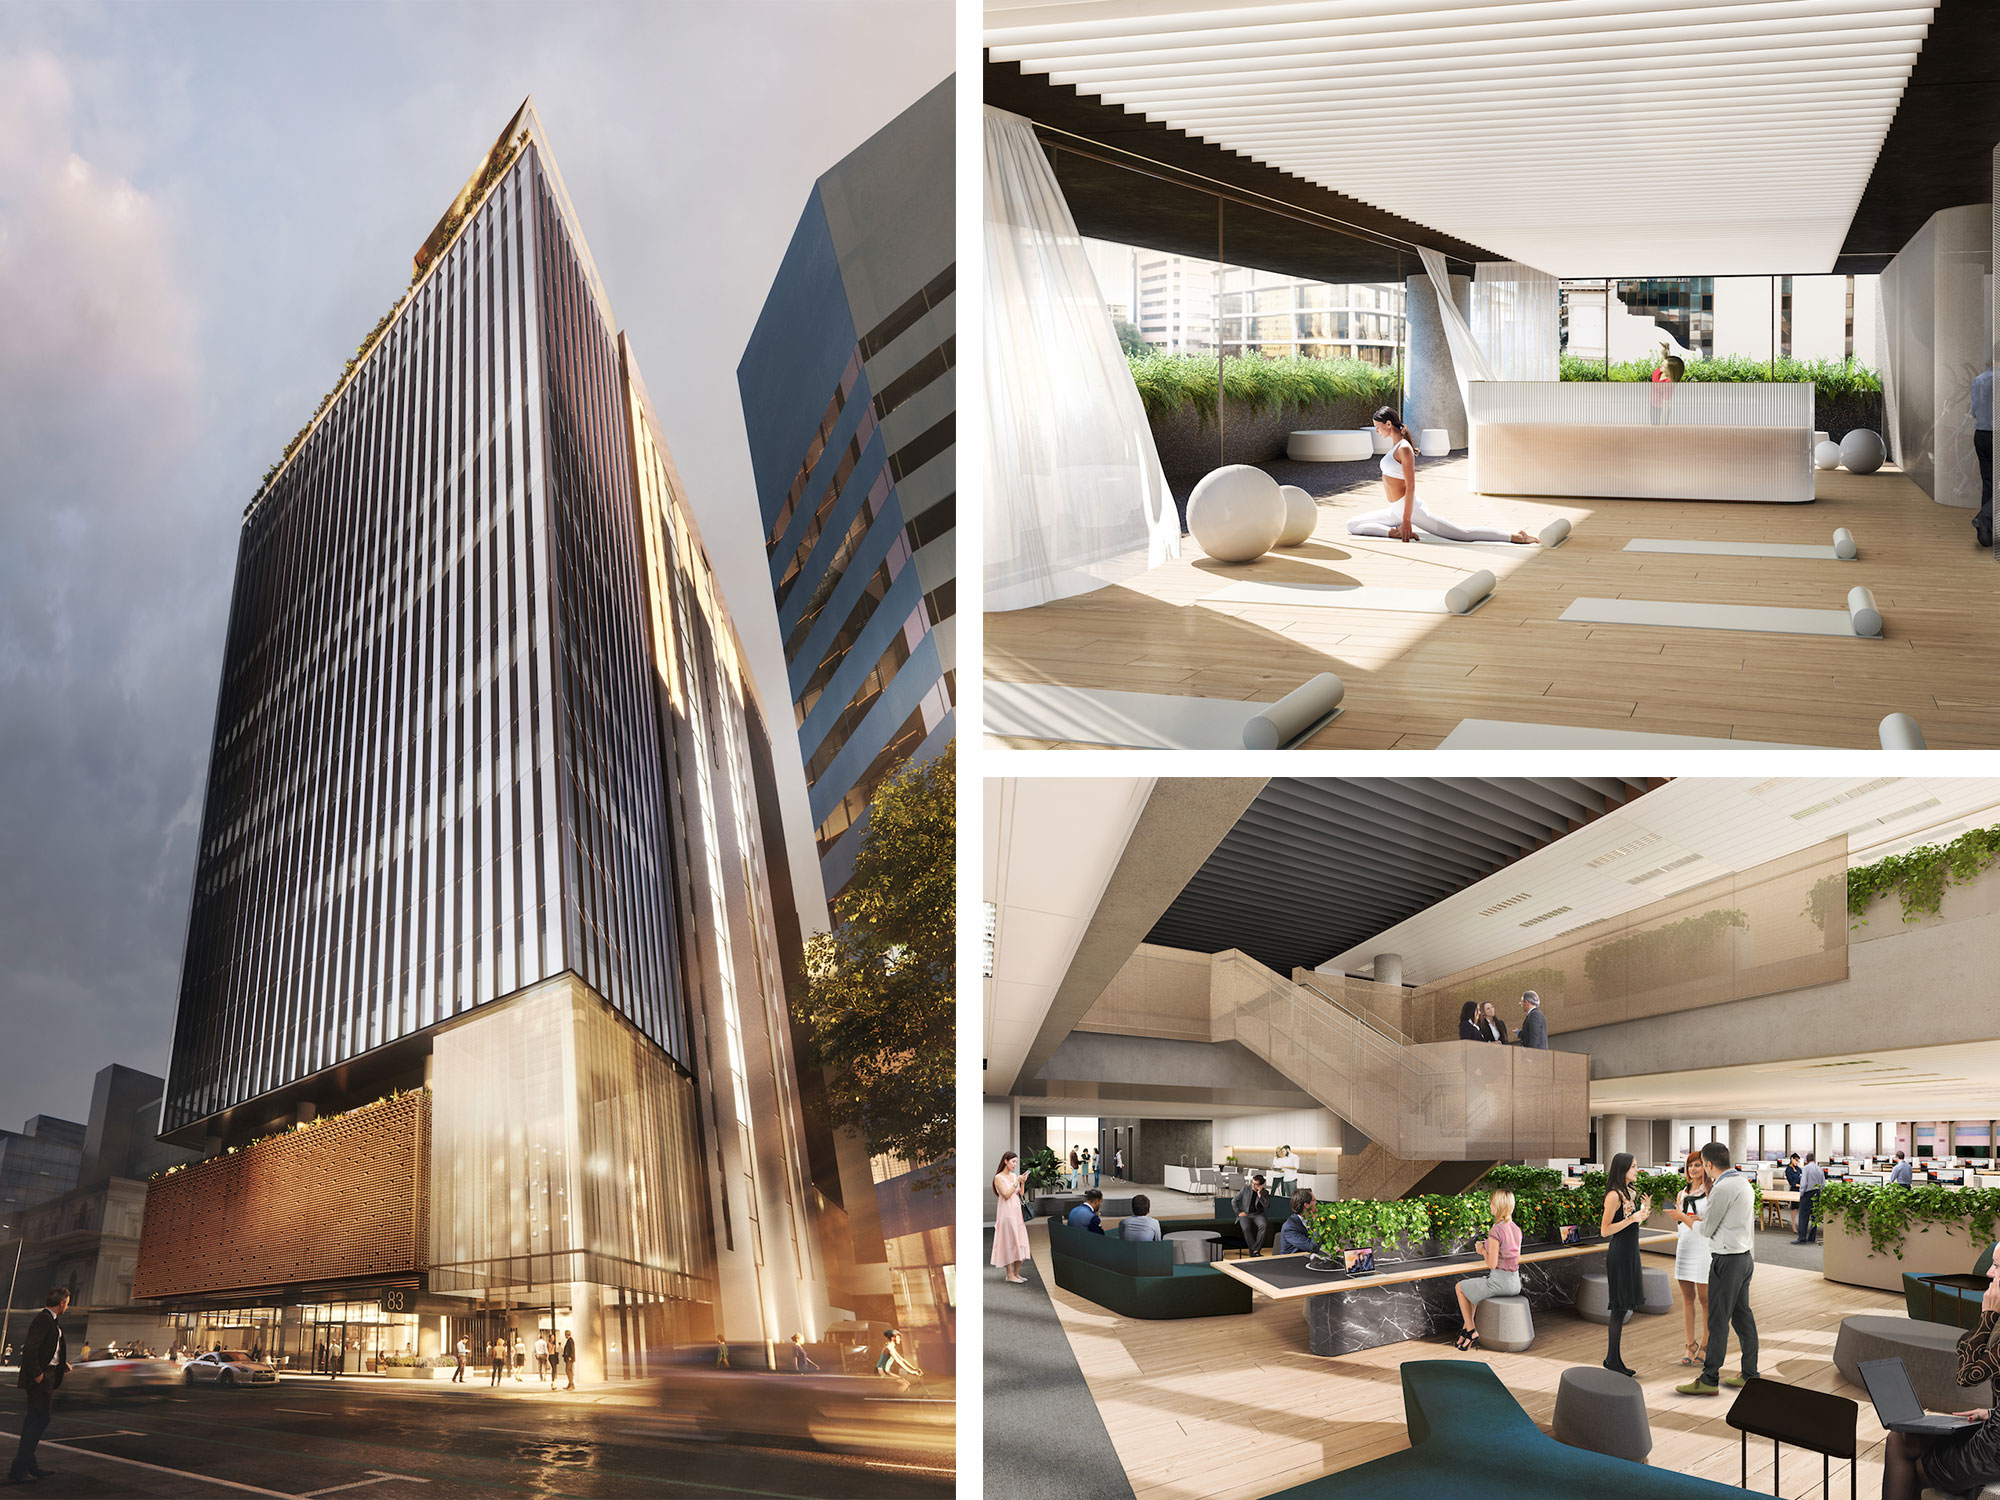 The 17-level tower, designed by Woods Bagot, will deliver 30,000sq m of A-grade office space/